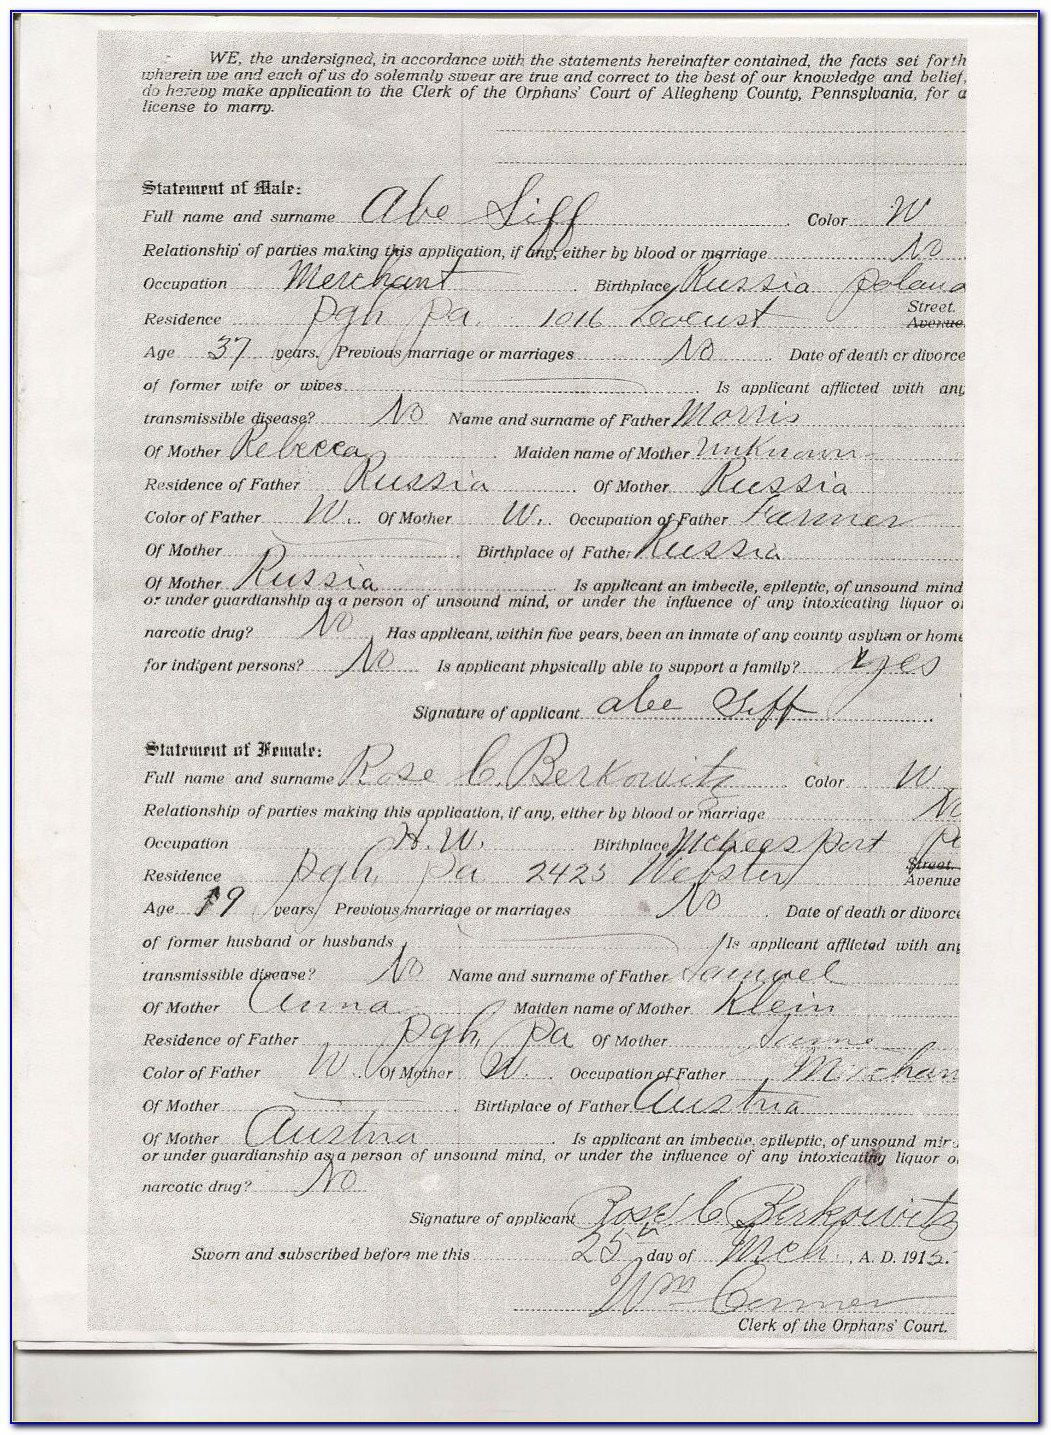 Allegheny County Records Birth Certificate